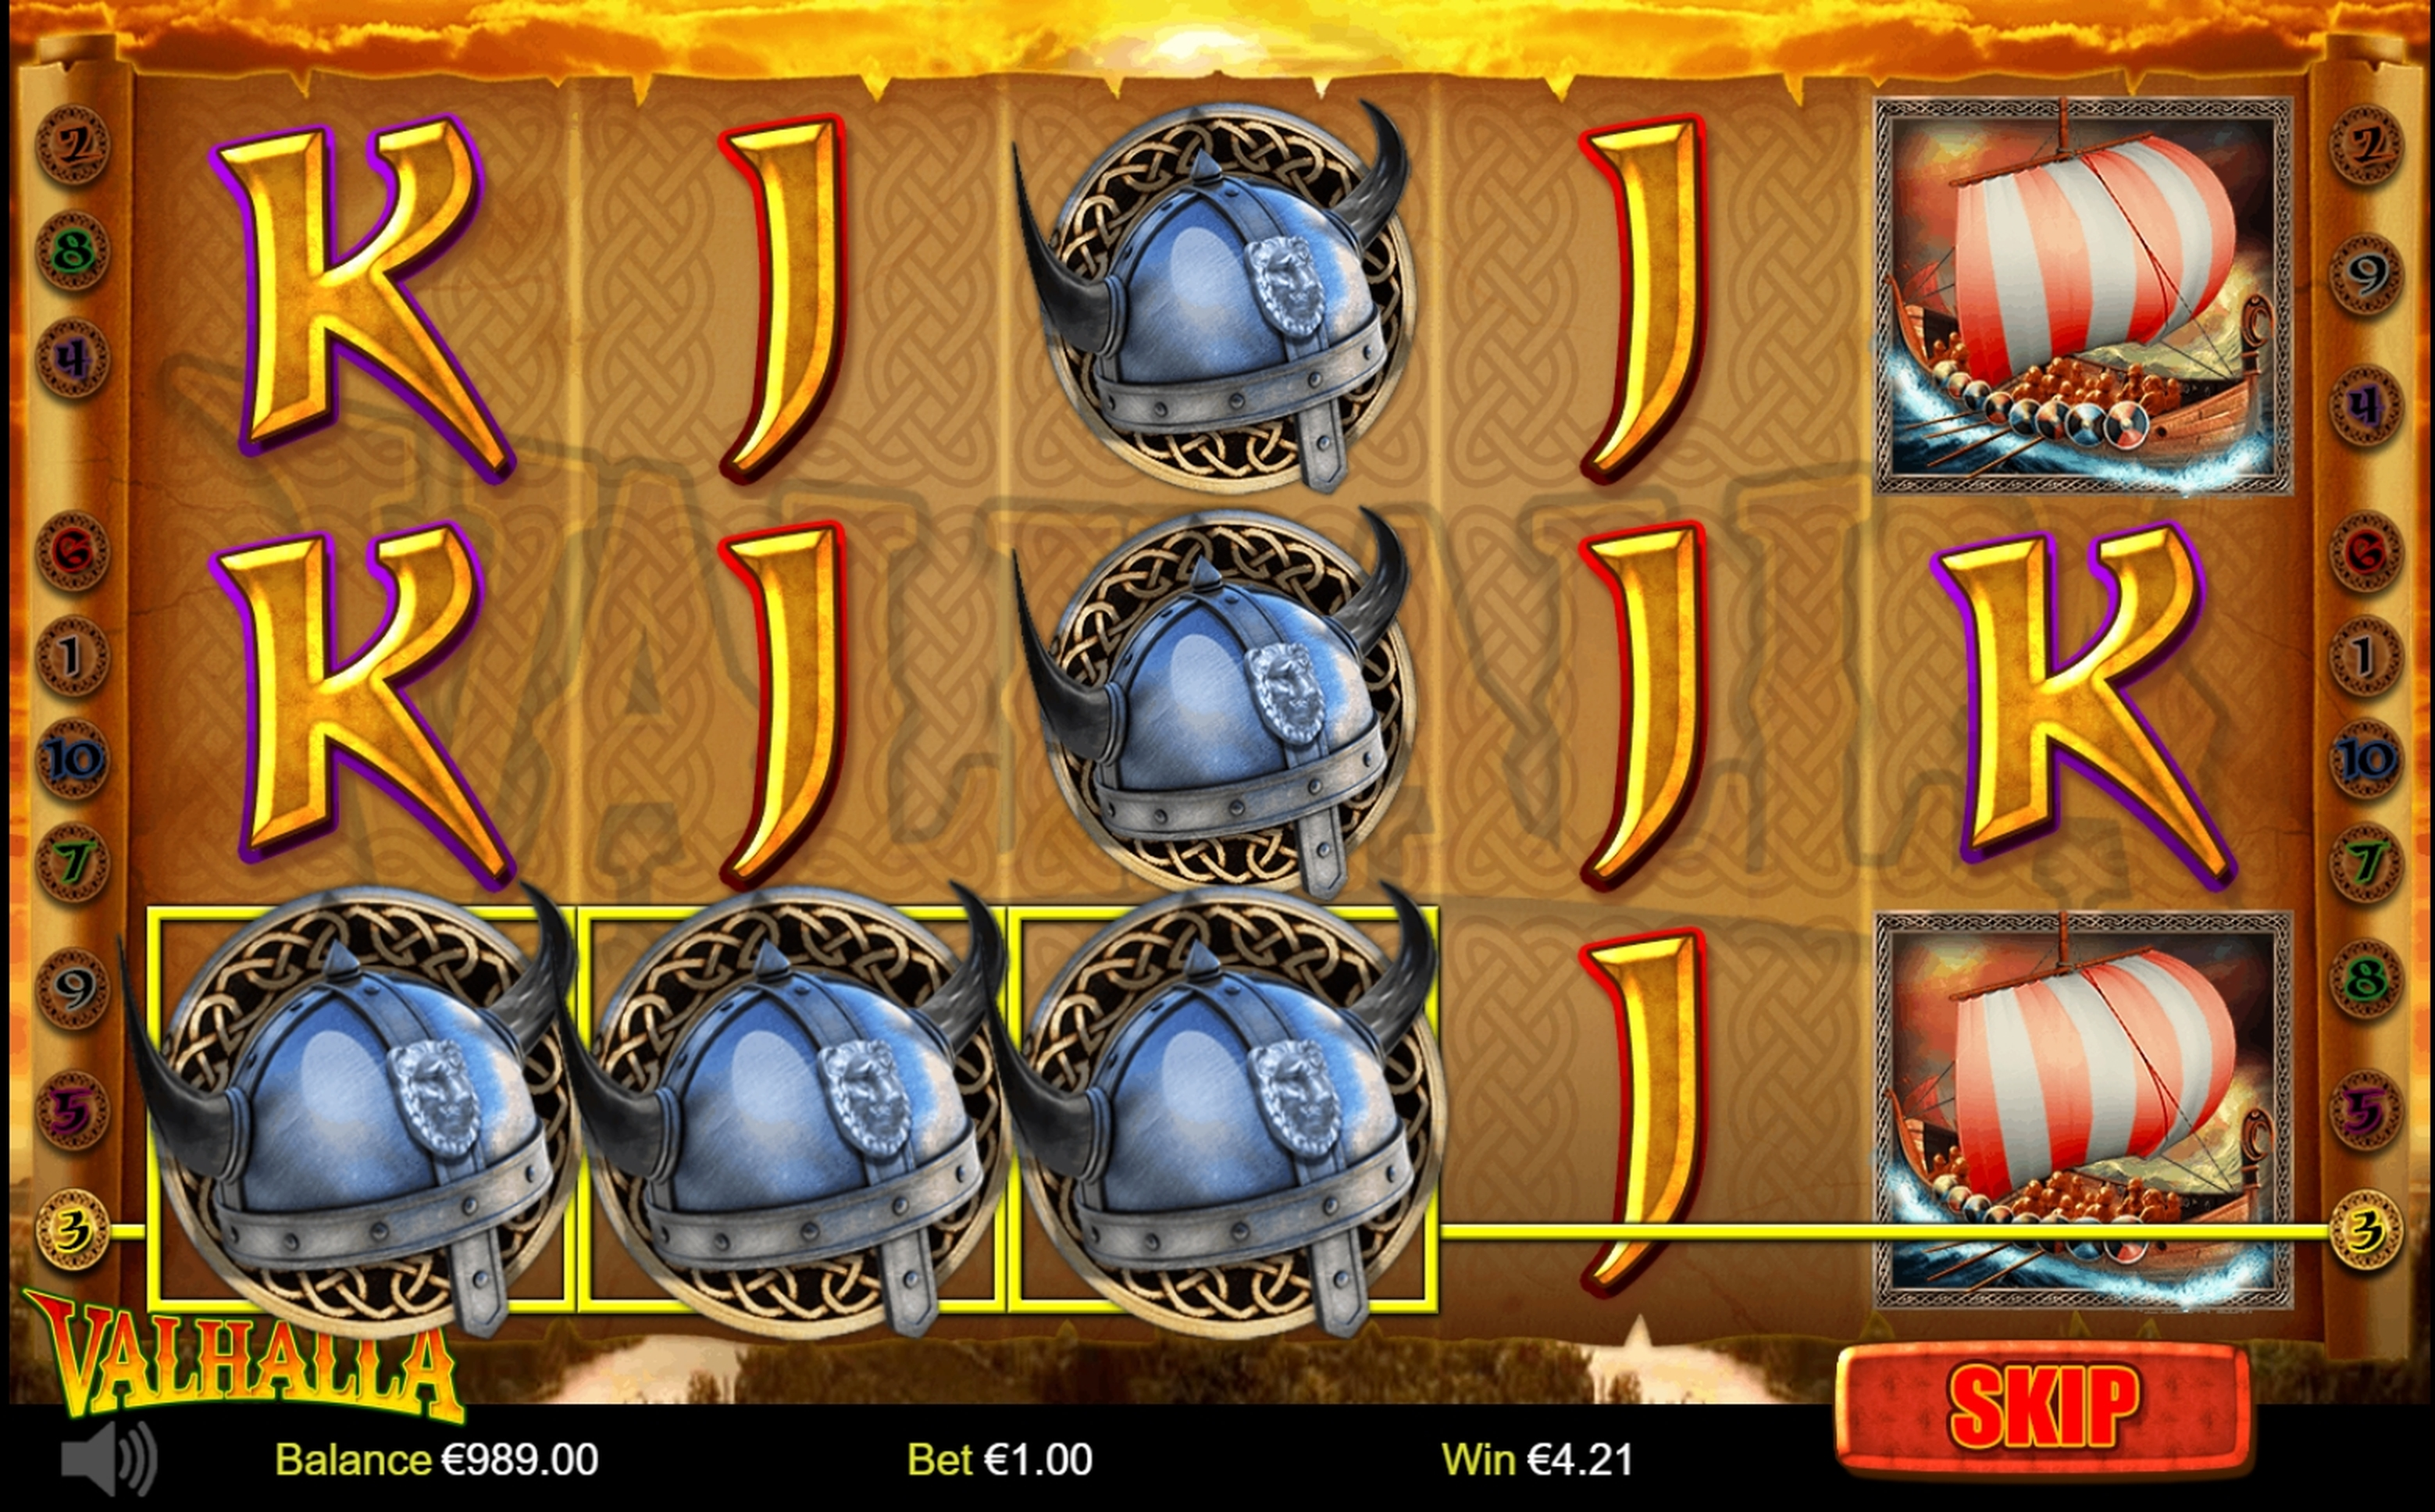 Win Money in Valhalla (Betdigital) Free Slot Game by Betdigital